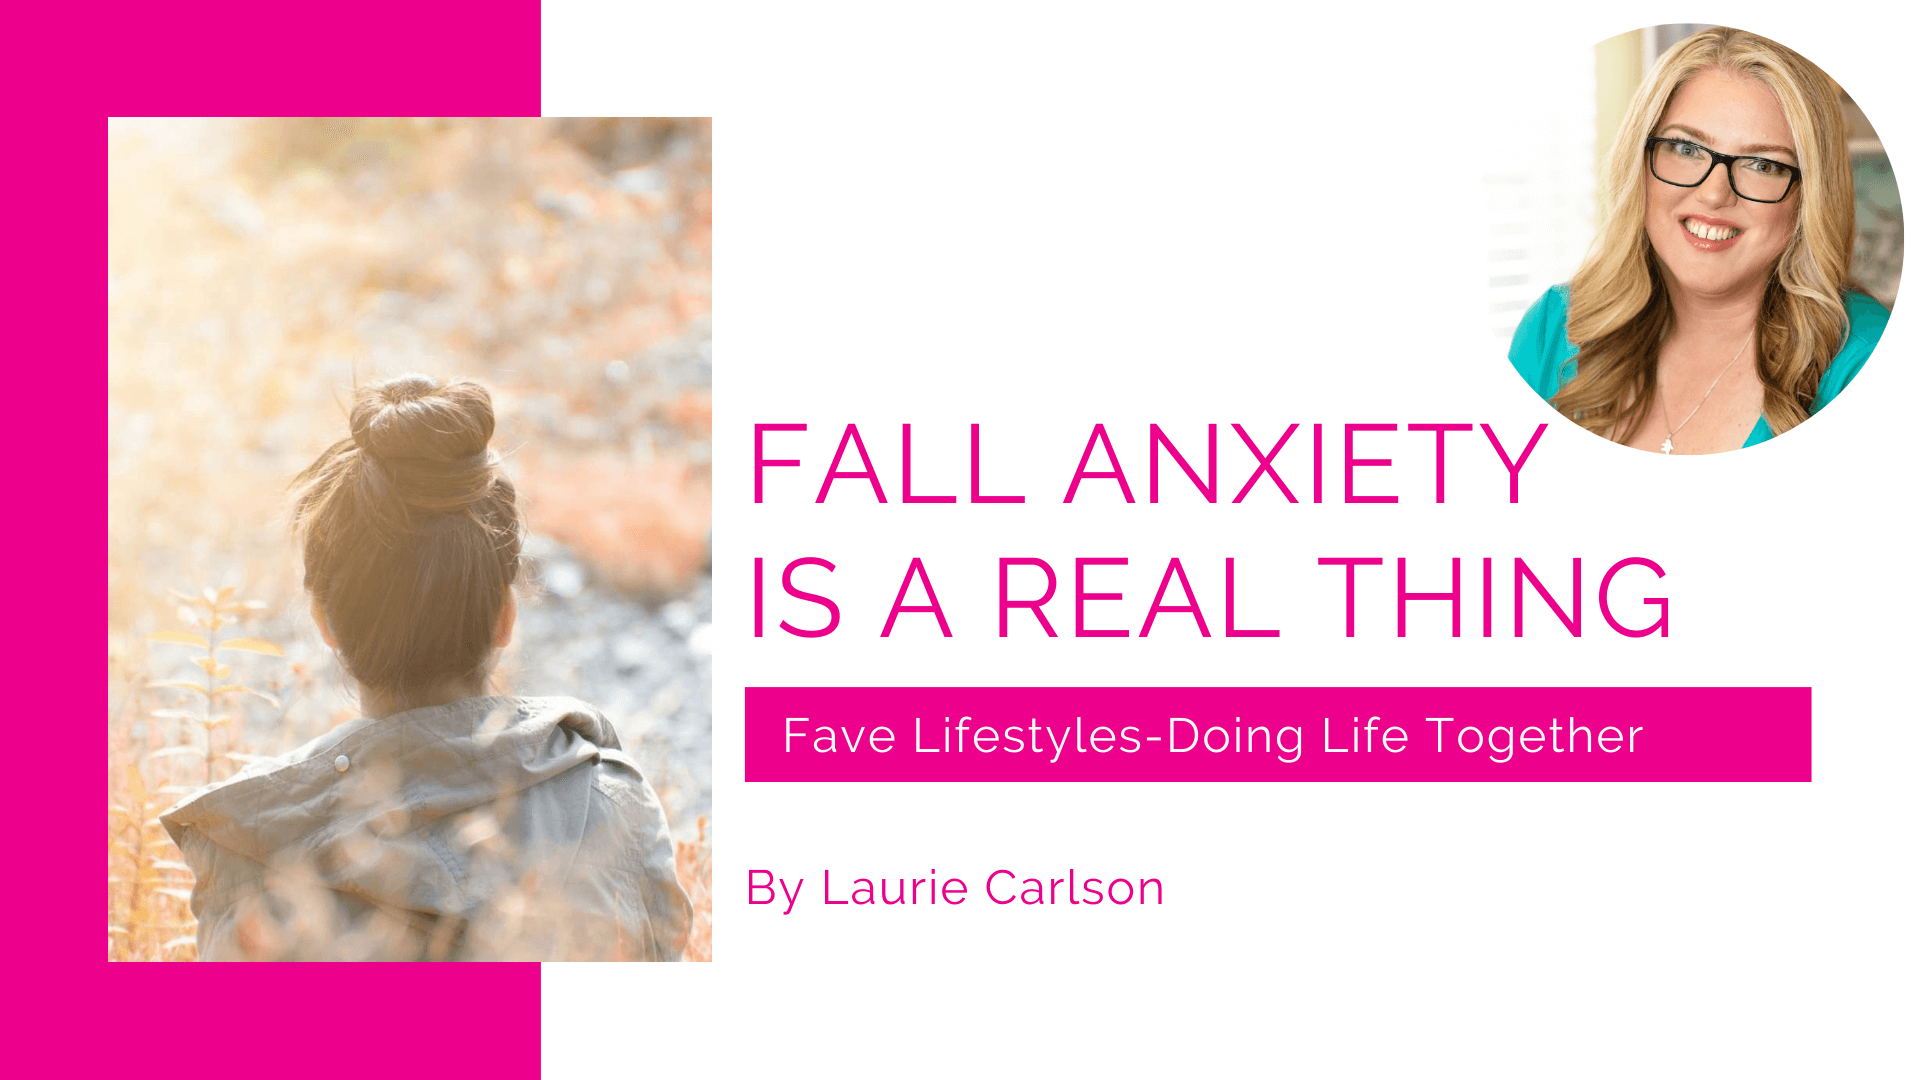 Fall Anxiety is a Real Thing